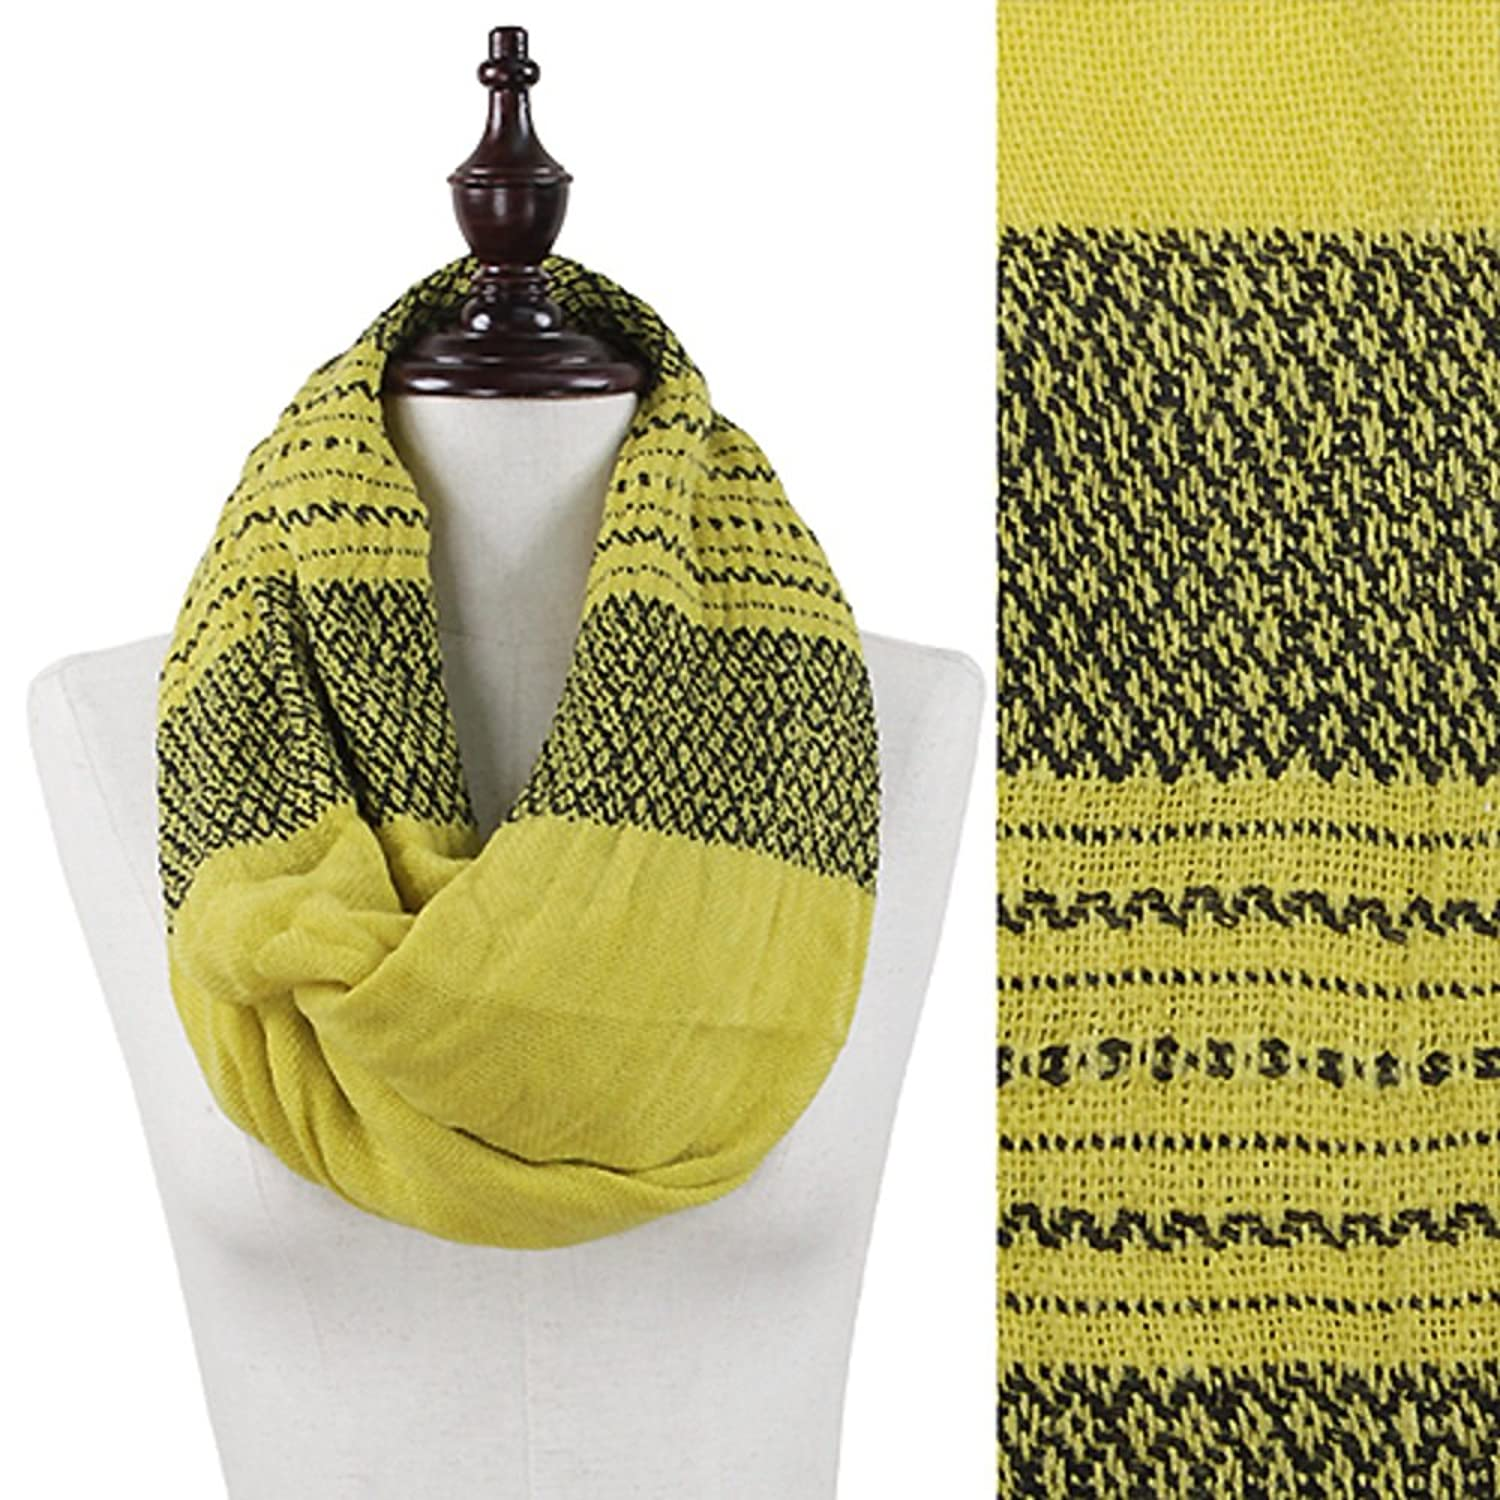 Infinity Scarf for Her - Multiple Colors & Patterns - Top Quality